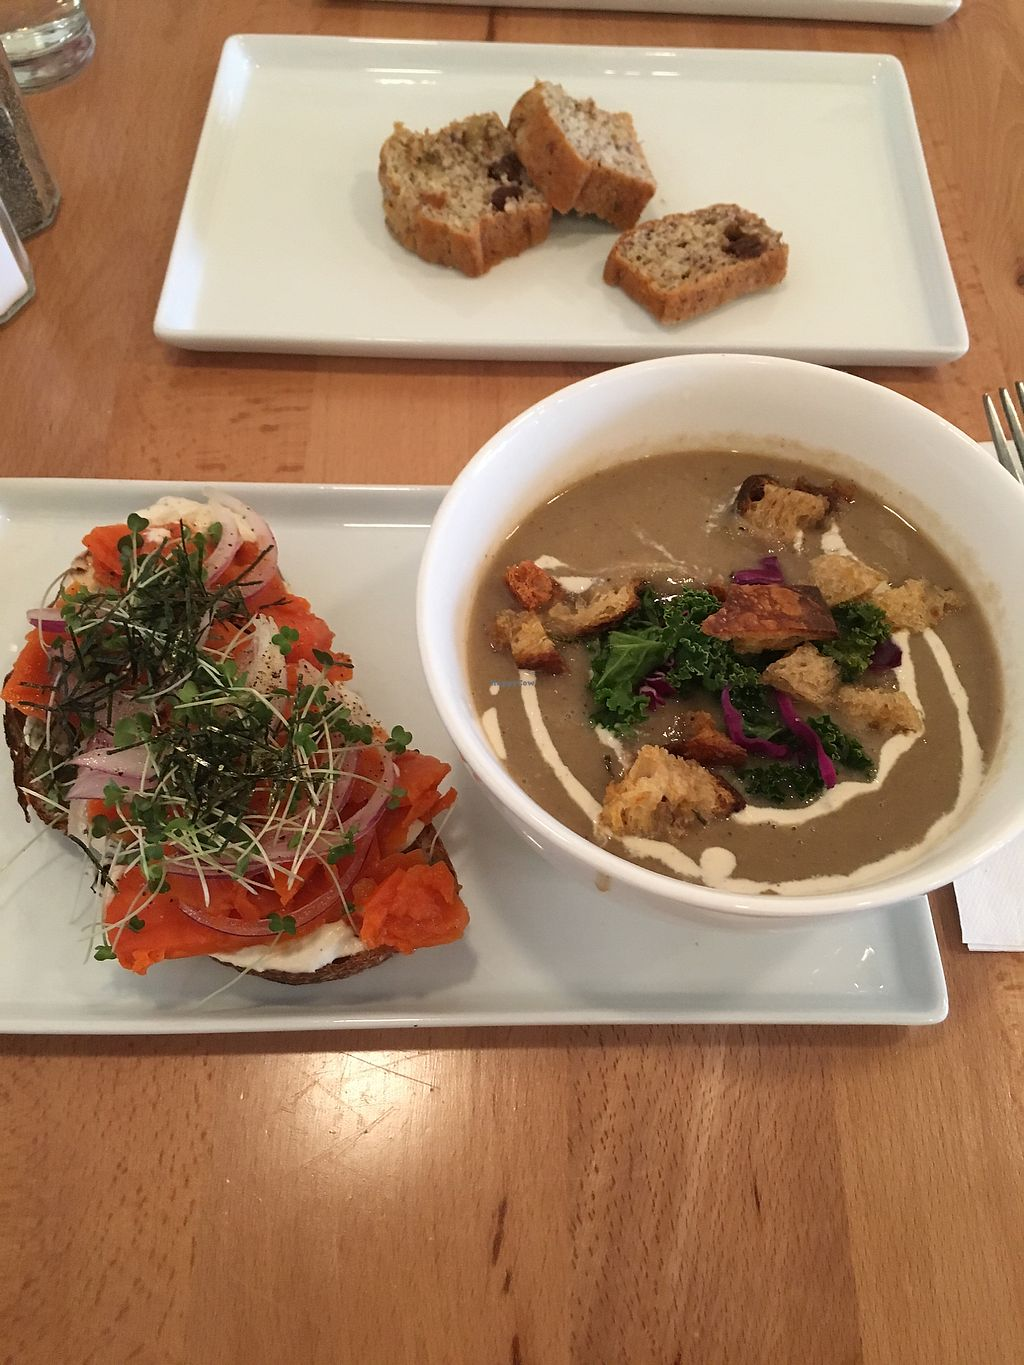 "Photo of Roots + Fruits  by <a href=""/members/profile/Chelseachernobyl"">Chelseachernobyl</a> <br/>Lox carrot toast and cremini mushroom soup  <br/> March 6, 2018  - <a href='/contact/abuse/image/103502/367372'>Report</a>"